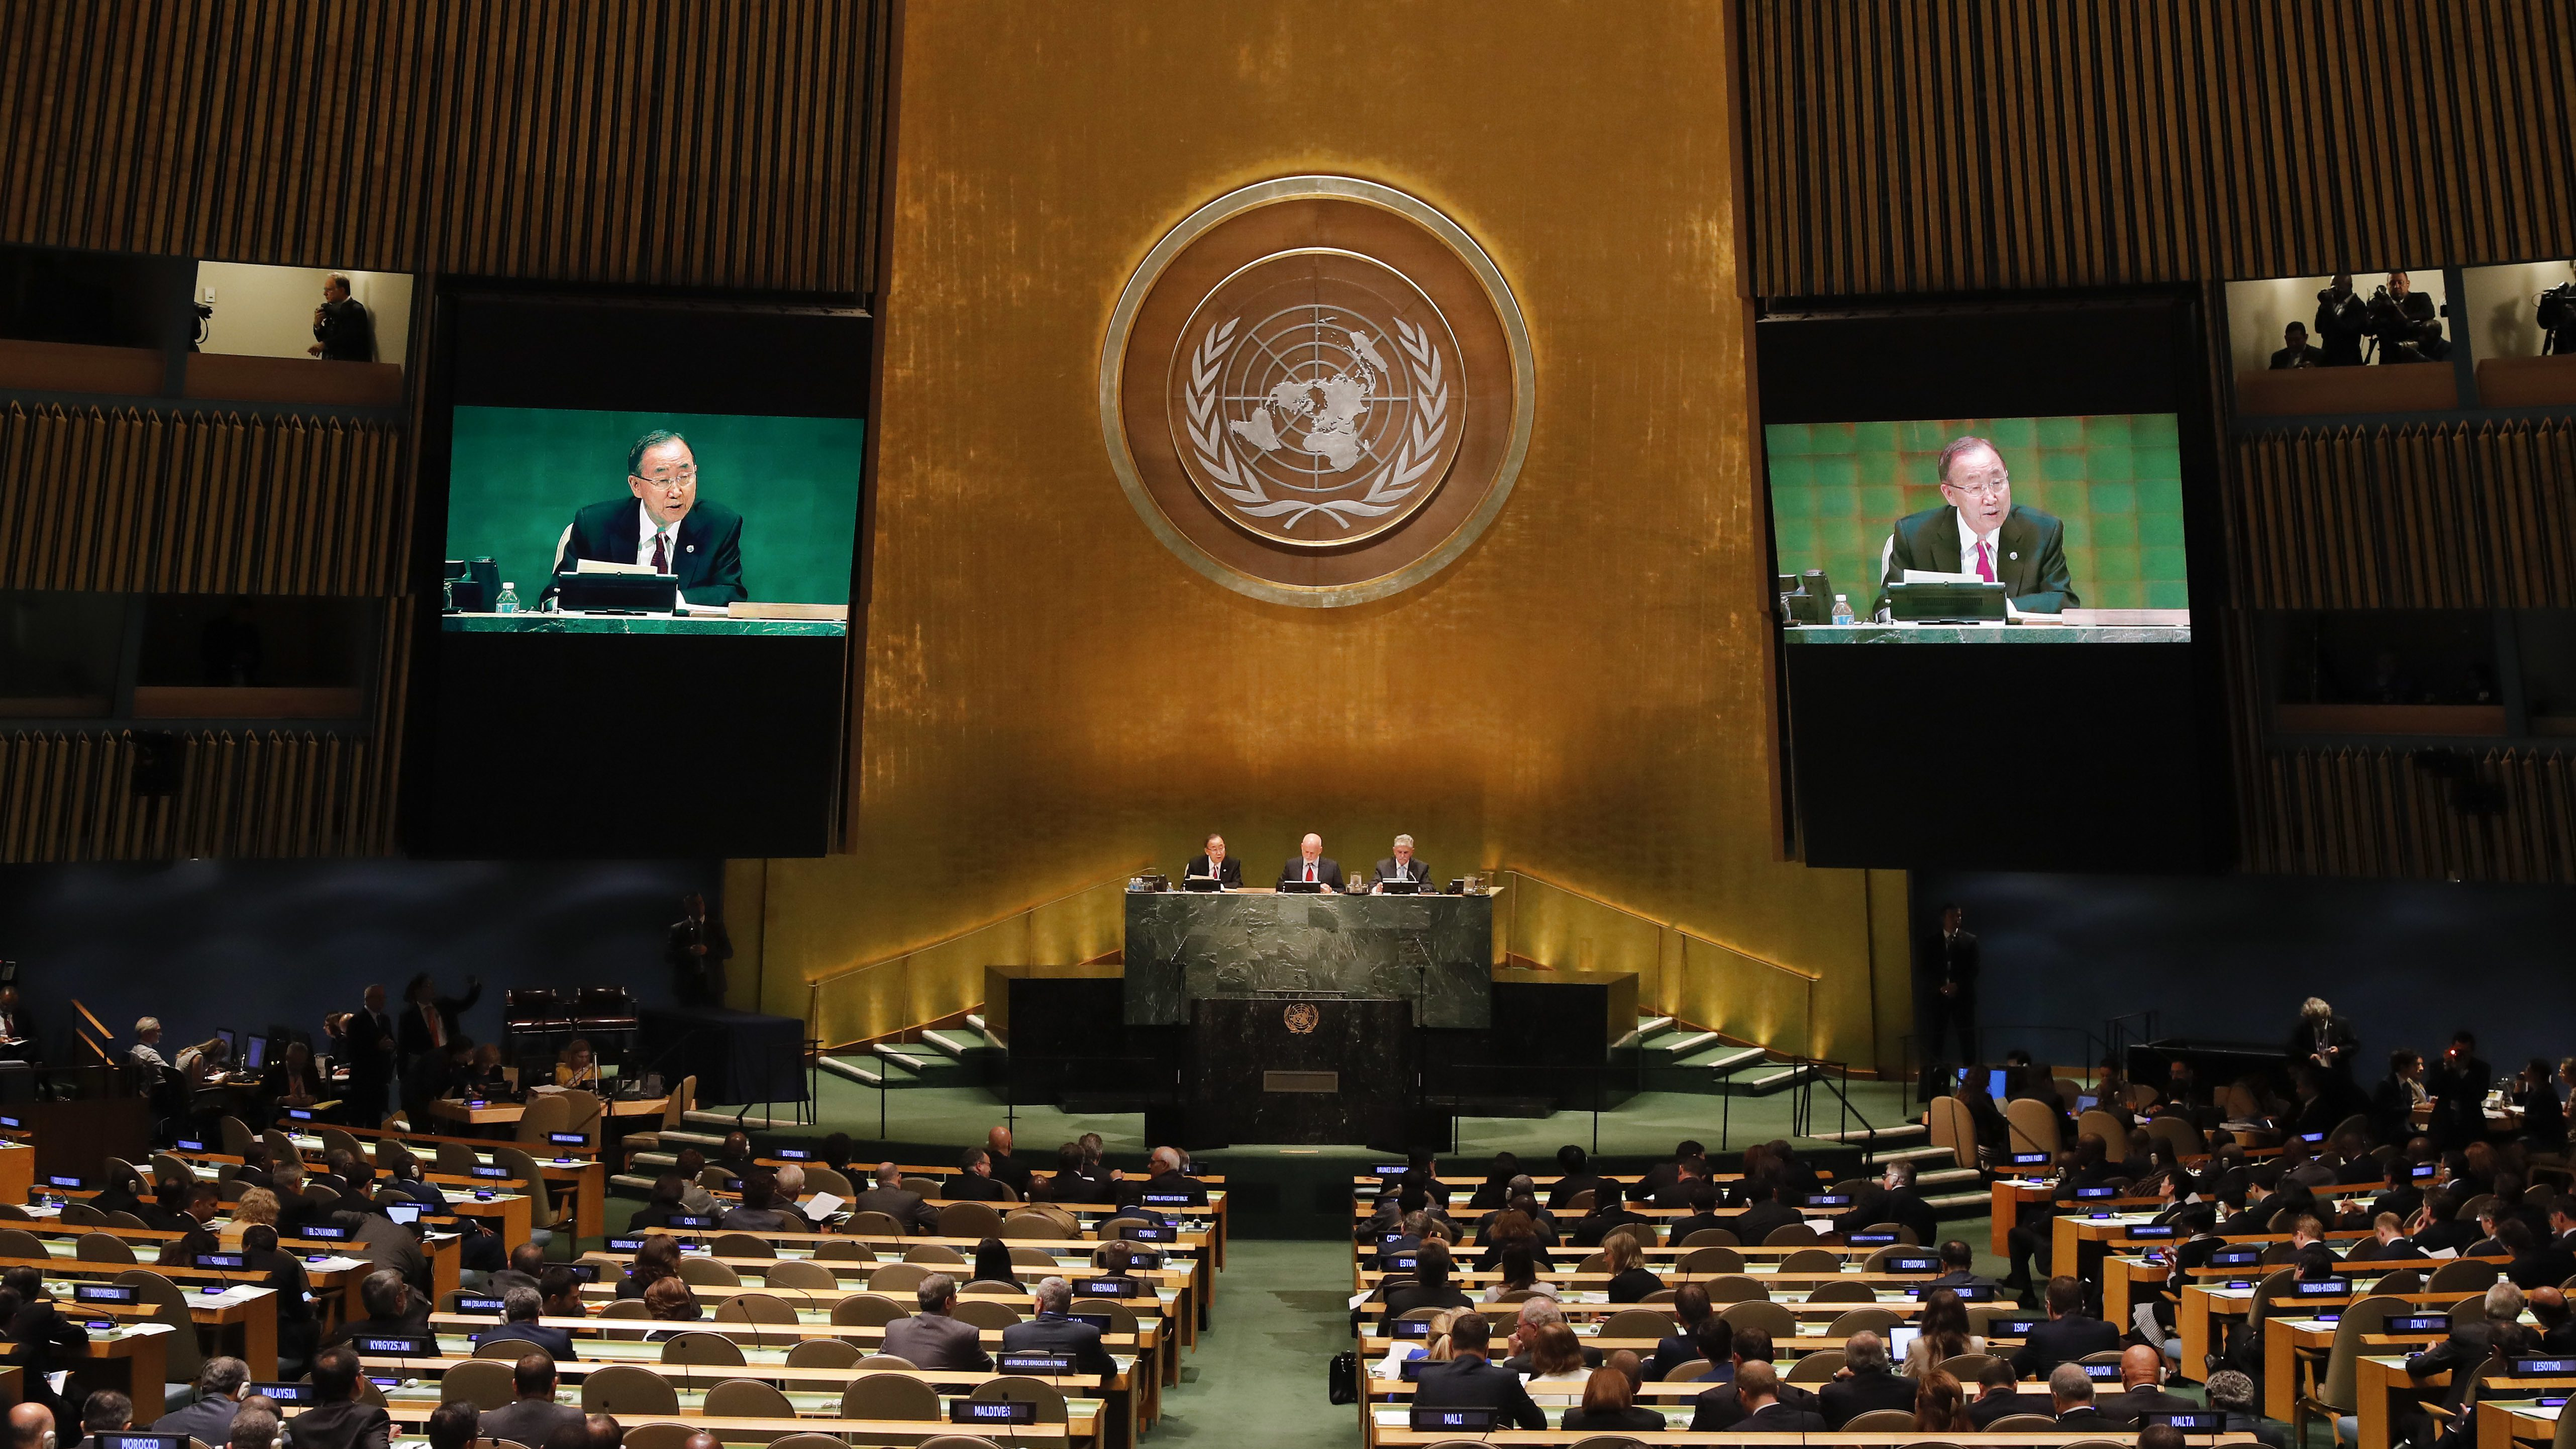 United Nations Secretary-General Ban Ki-moon speaks as President of the 71st session of the General Assembly Peter Thomson, center, and Mogens Lykketoft, President of the 70th session of the General Assembly look on during the opening of a summit addressing large movements of refugees and migrants, Monday, Sept. 19, 2016, at U.N. headquarters. (AP Photo/Julie Jacobson)